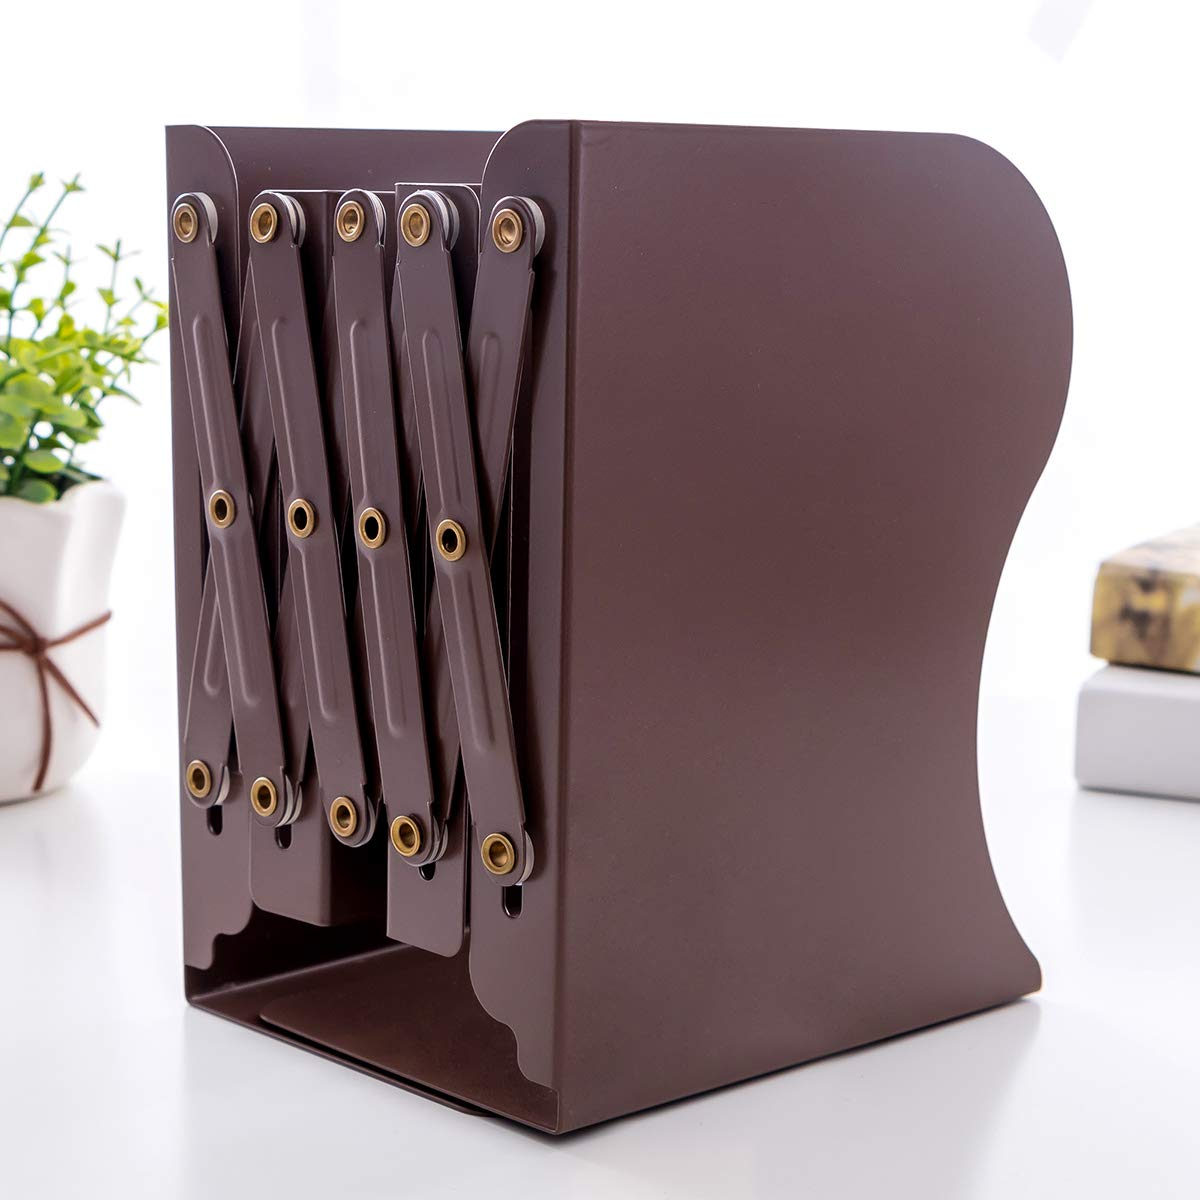 PUNCIA Expandable Bookcase Desktop Bookend Stand Holder Adjustable Book Rack for Kid Child Student Book Organizer Brown 4-17.7in x 7.5in x 5.9in